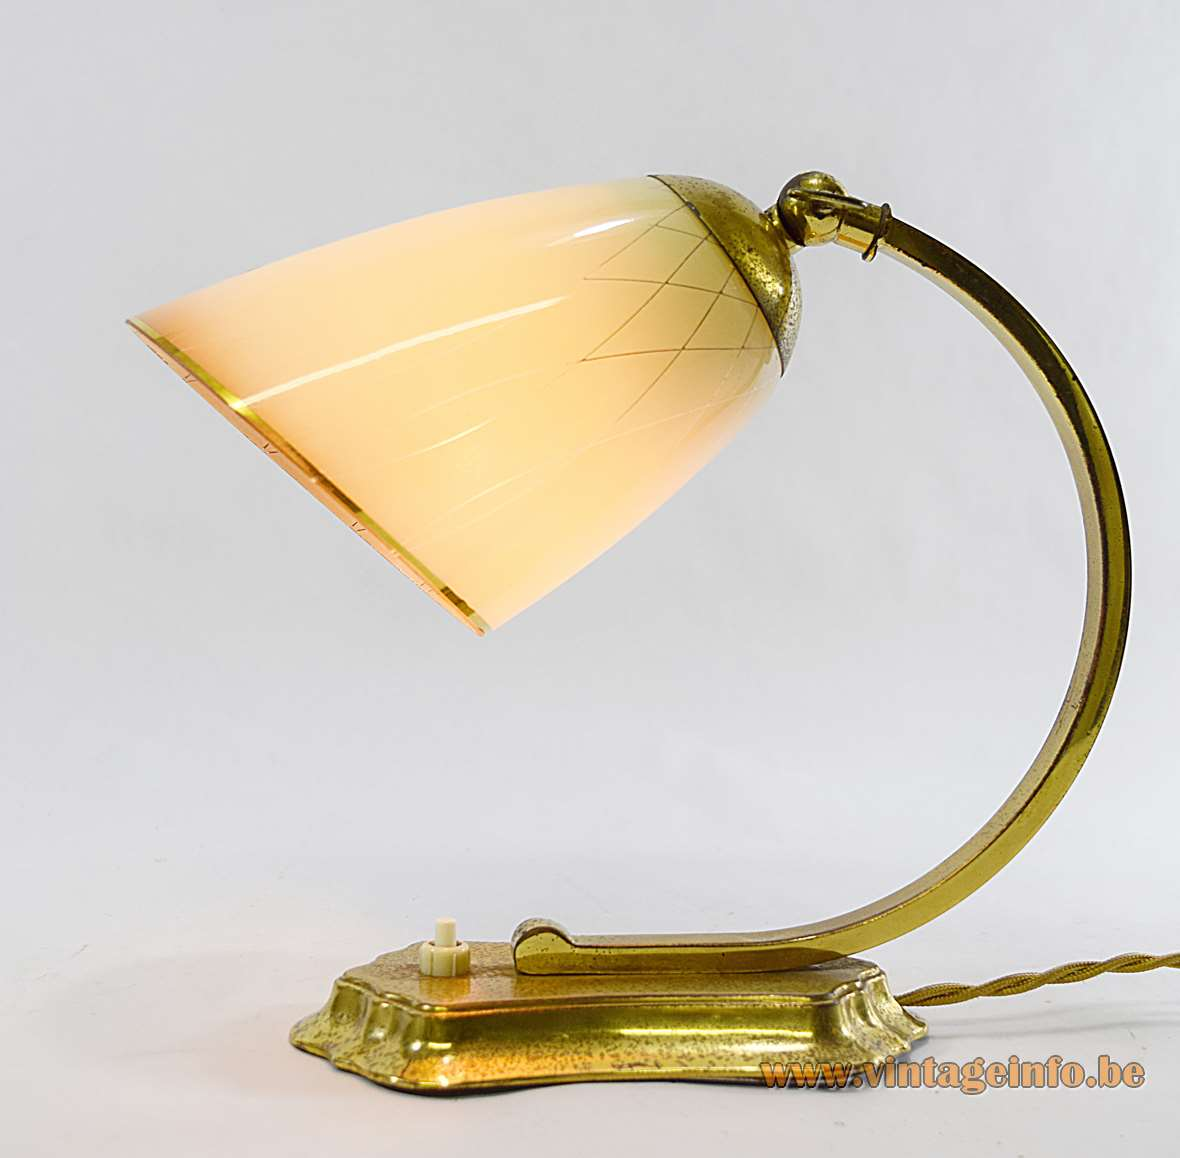 Lacroix wall or table lamp in brass plated metal and striped glass from the 1940s 1950s